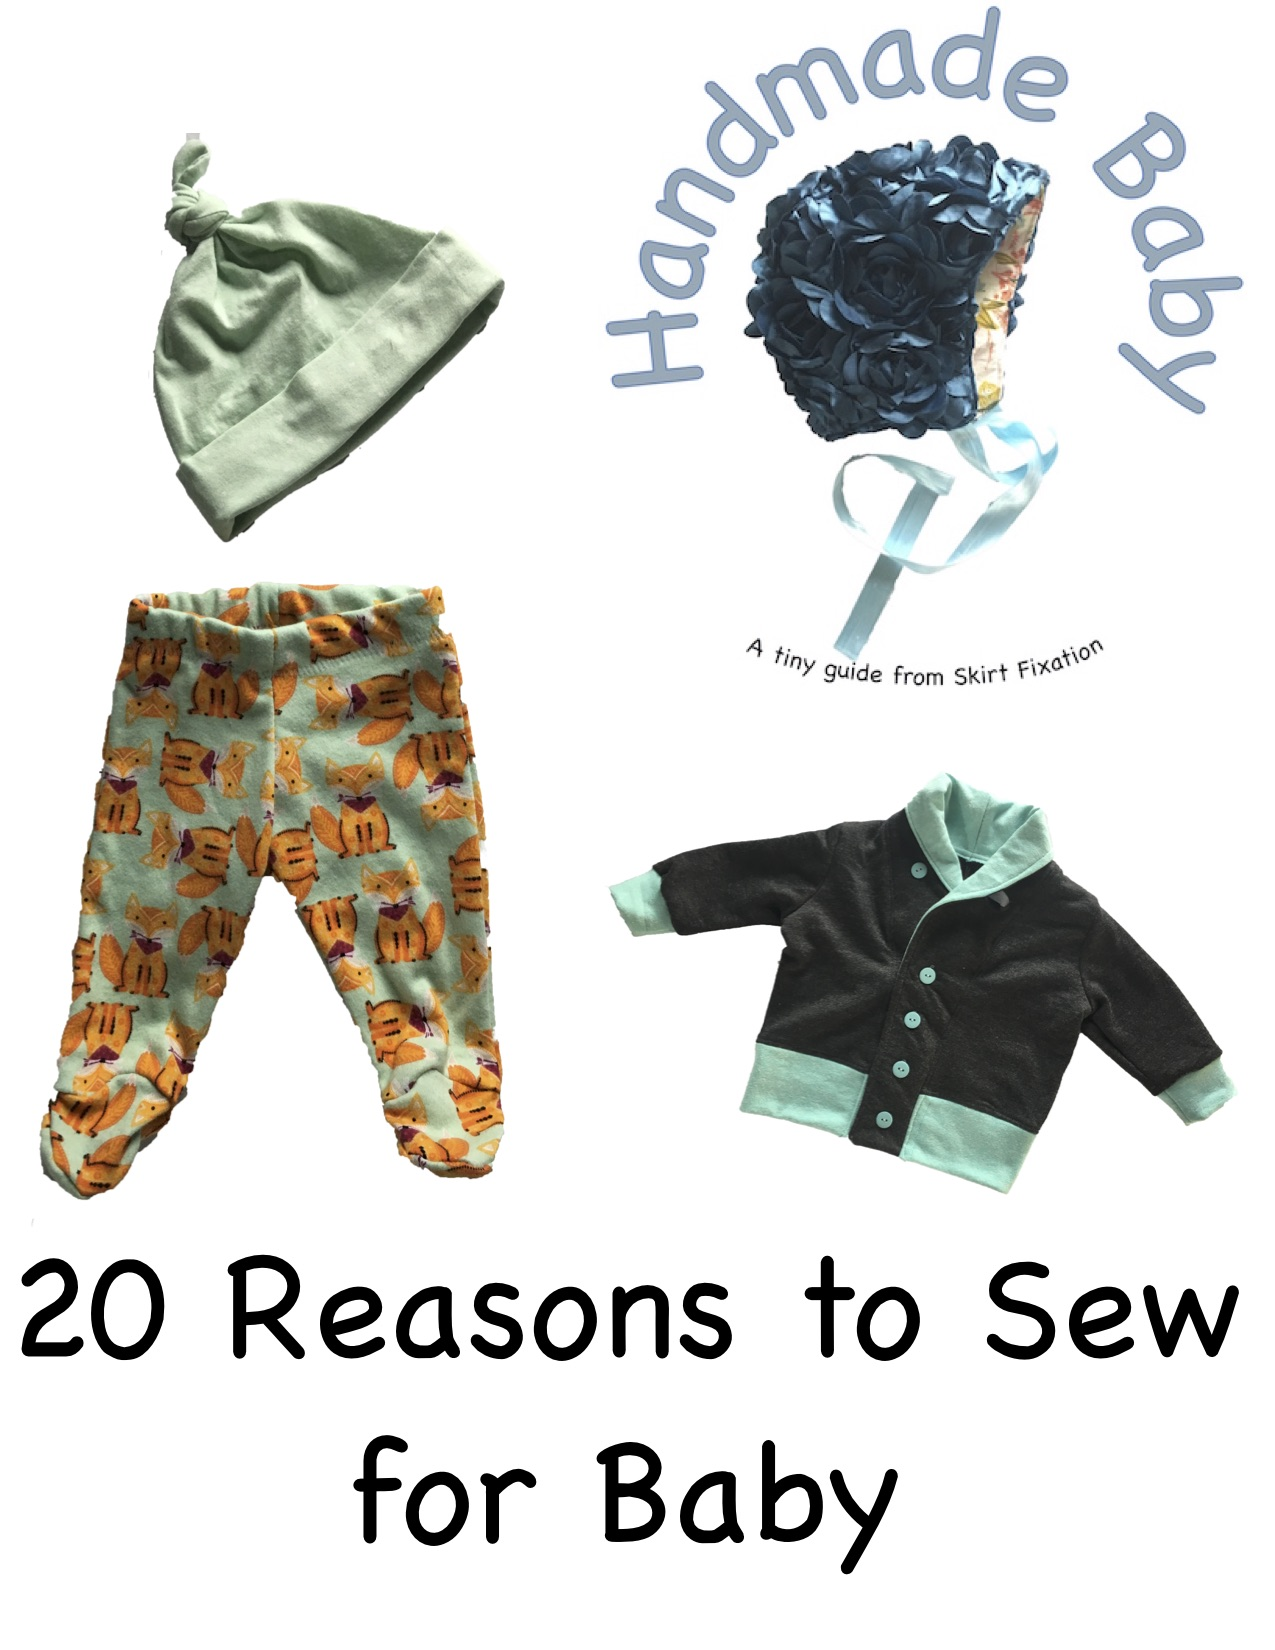 20+ reasons to sew for baby from Skirt Fixation